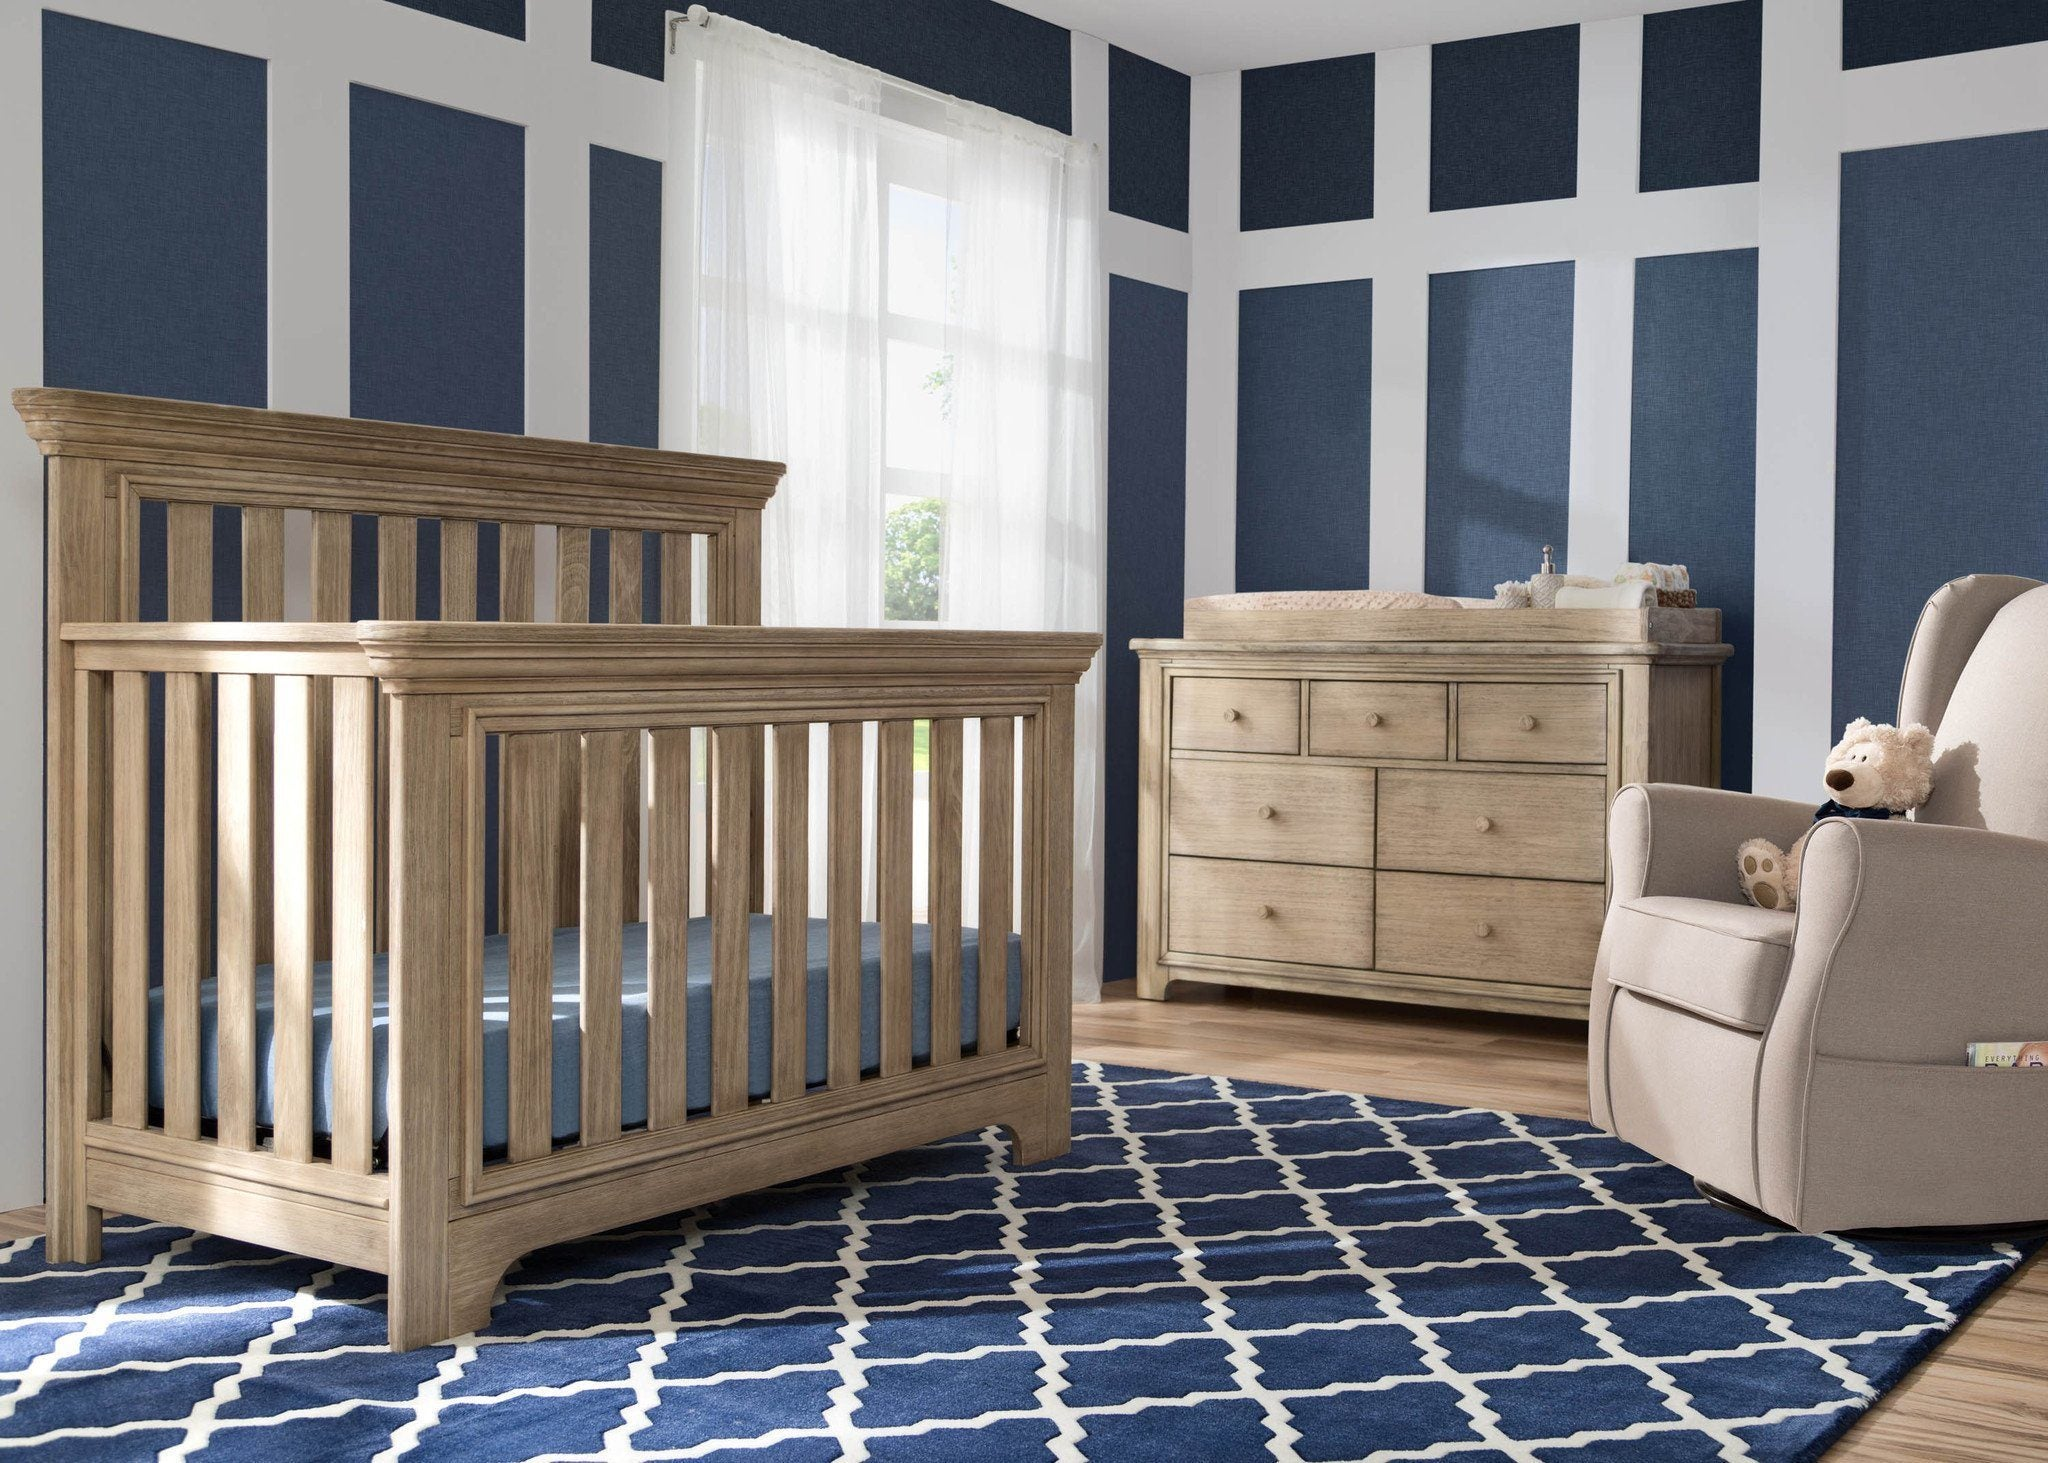 Serta Rustic Driftwood (112) Langley 4-in-1 Crib, Room View